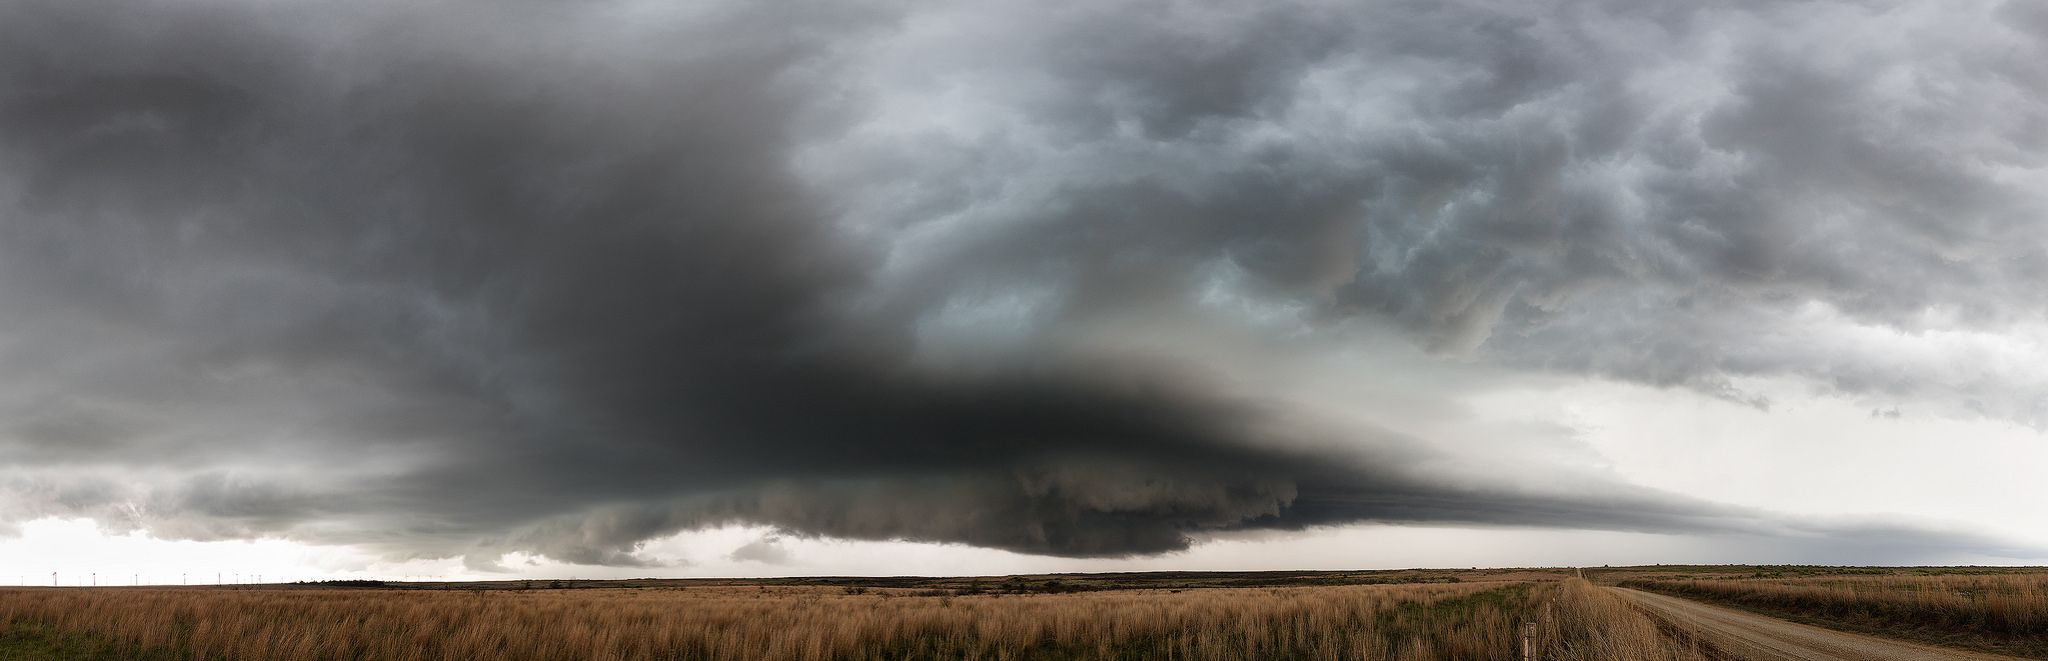 https://flic.kr/p/FnyoJt | Bellevue Supercell Pano | Panoramic version of the supercell that did so much damage in the Dallas / Ft. Worth area on April 12, 2016. We started chasing this storm just south of Wichita Falls just past 2pm. It ended up chasing us for several hours where we had to break off in Chico, TX before it moved into the metroplex. We definitely did not want to get in its path! This storm had grapefruit sized hail! it was incredibly powerful. I feel for all who lost their…